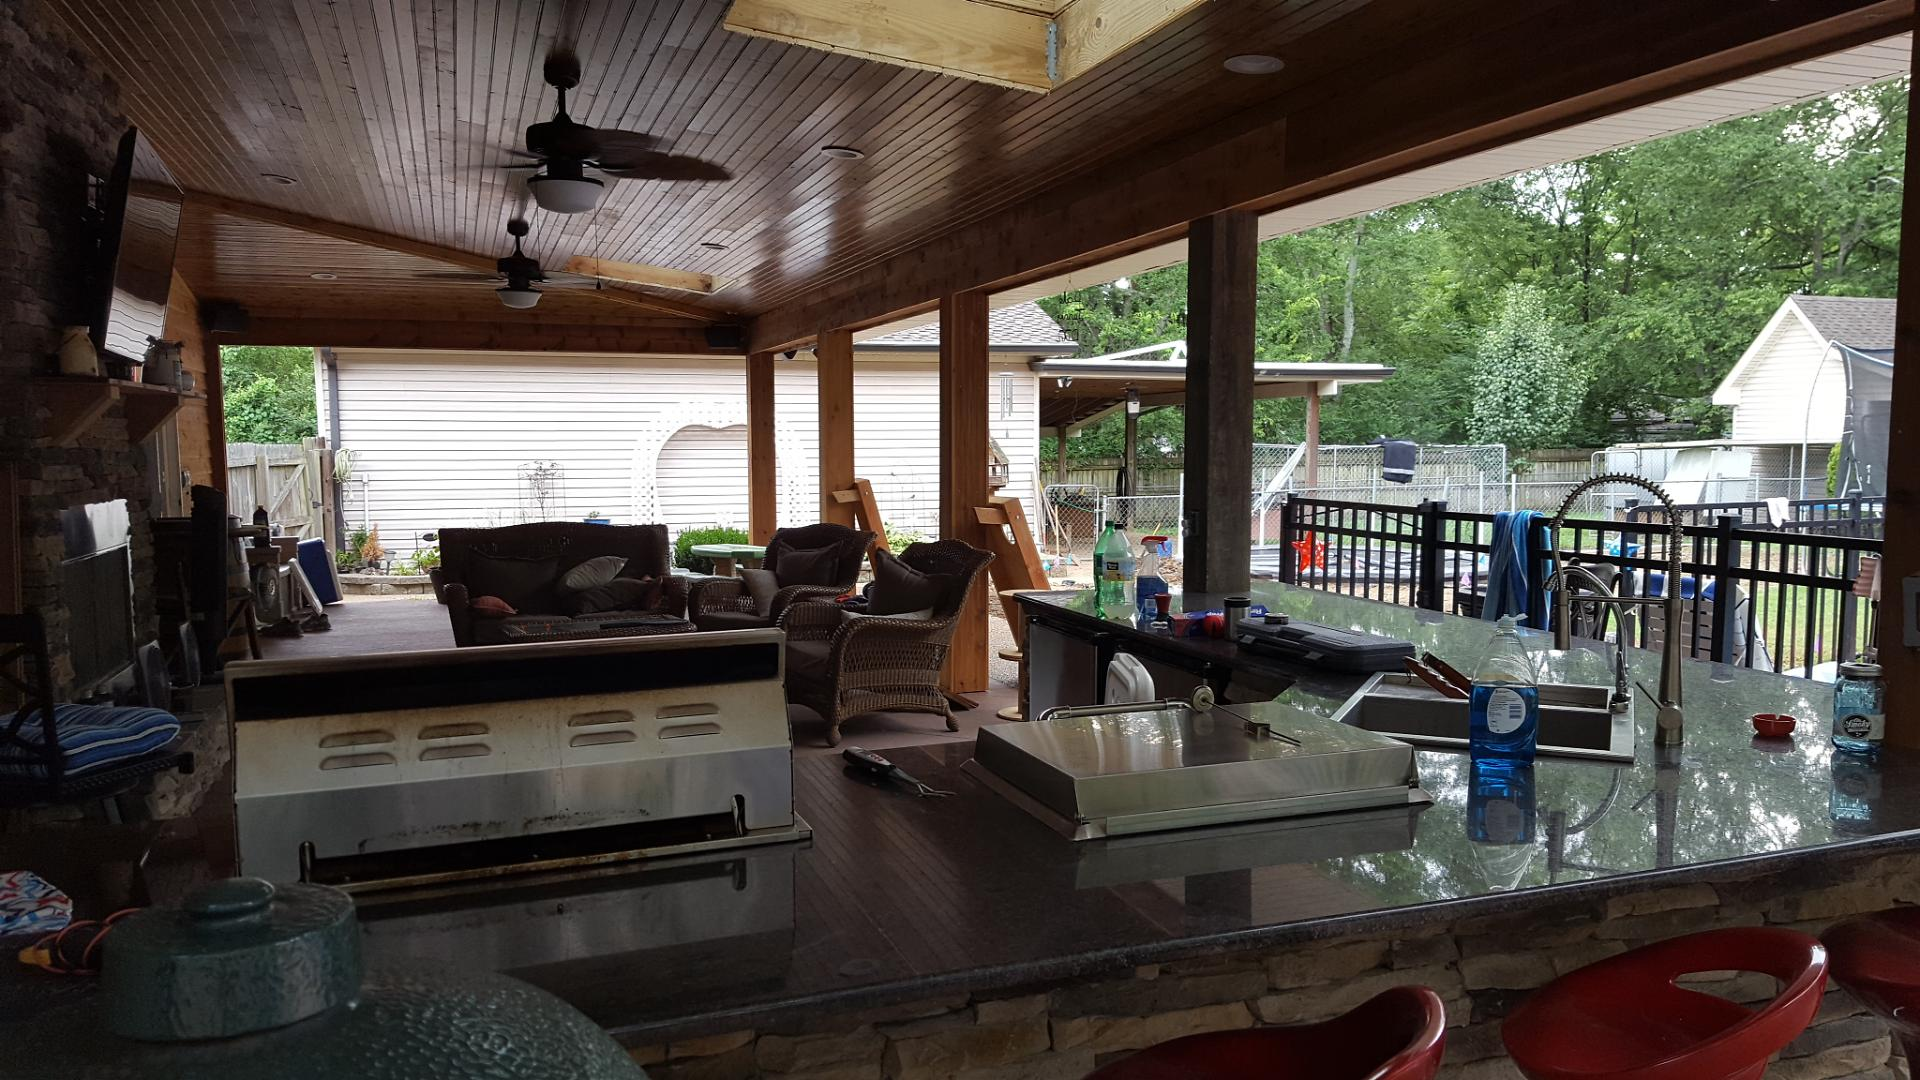 Joe M. Staub Building Group - Covered Patio with Outdoor ... on Covered Outdoor Kitchen With Fireplace id=80923